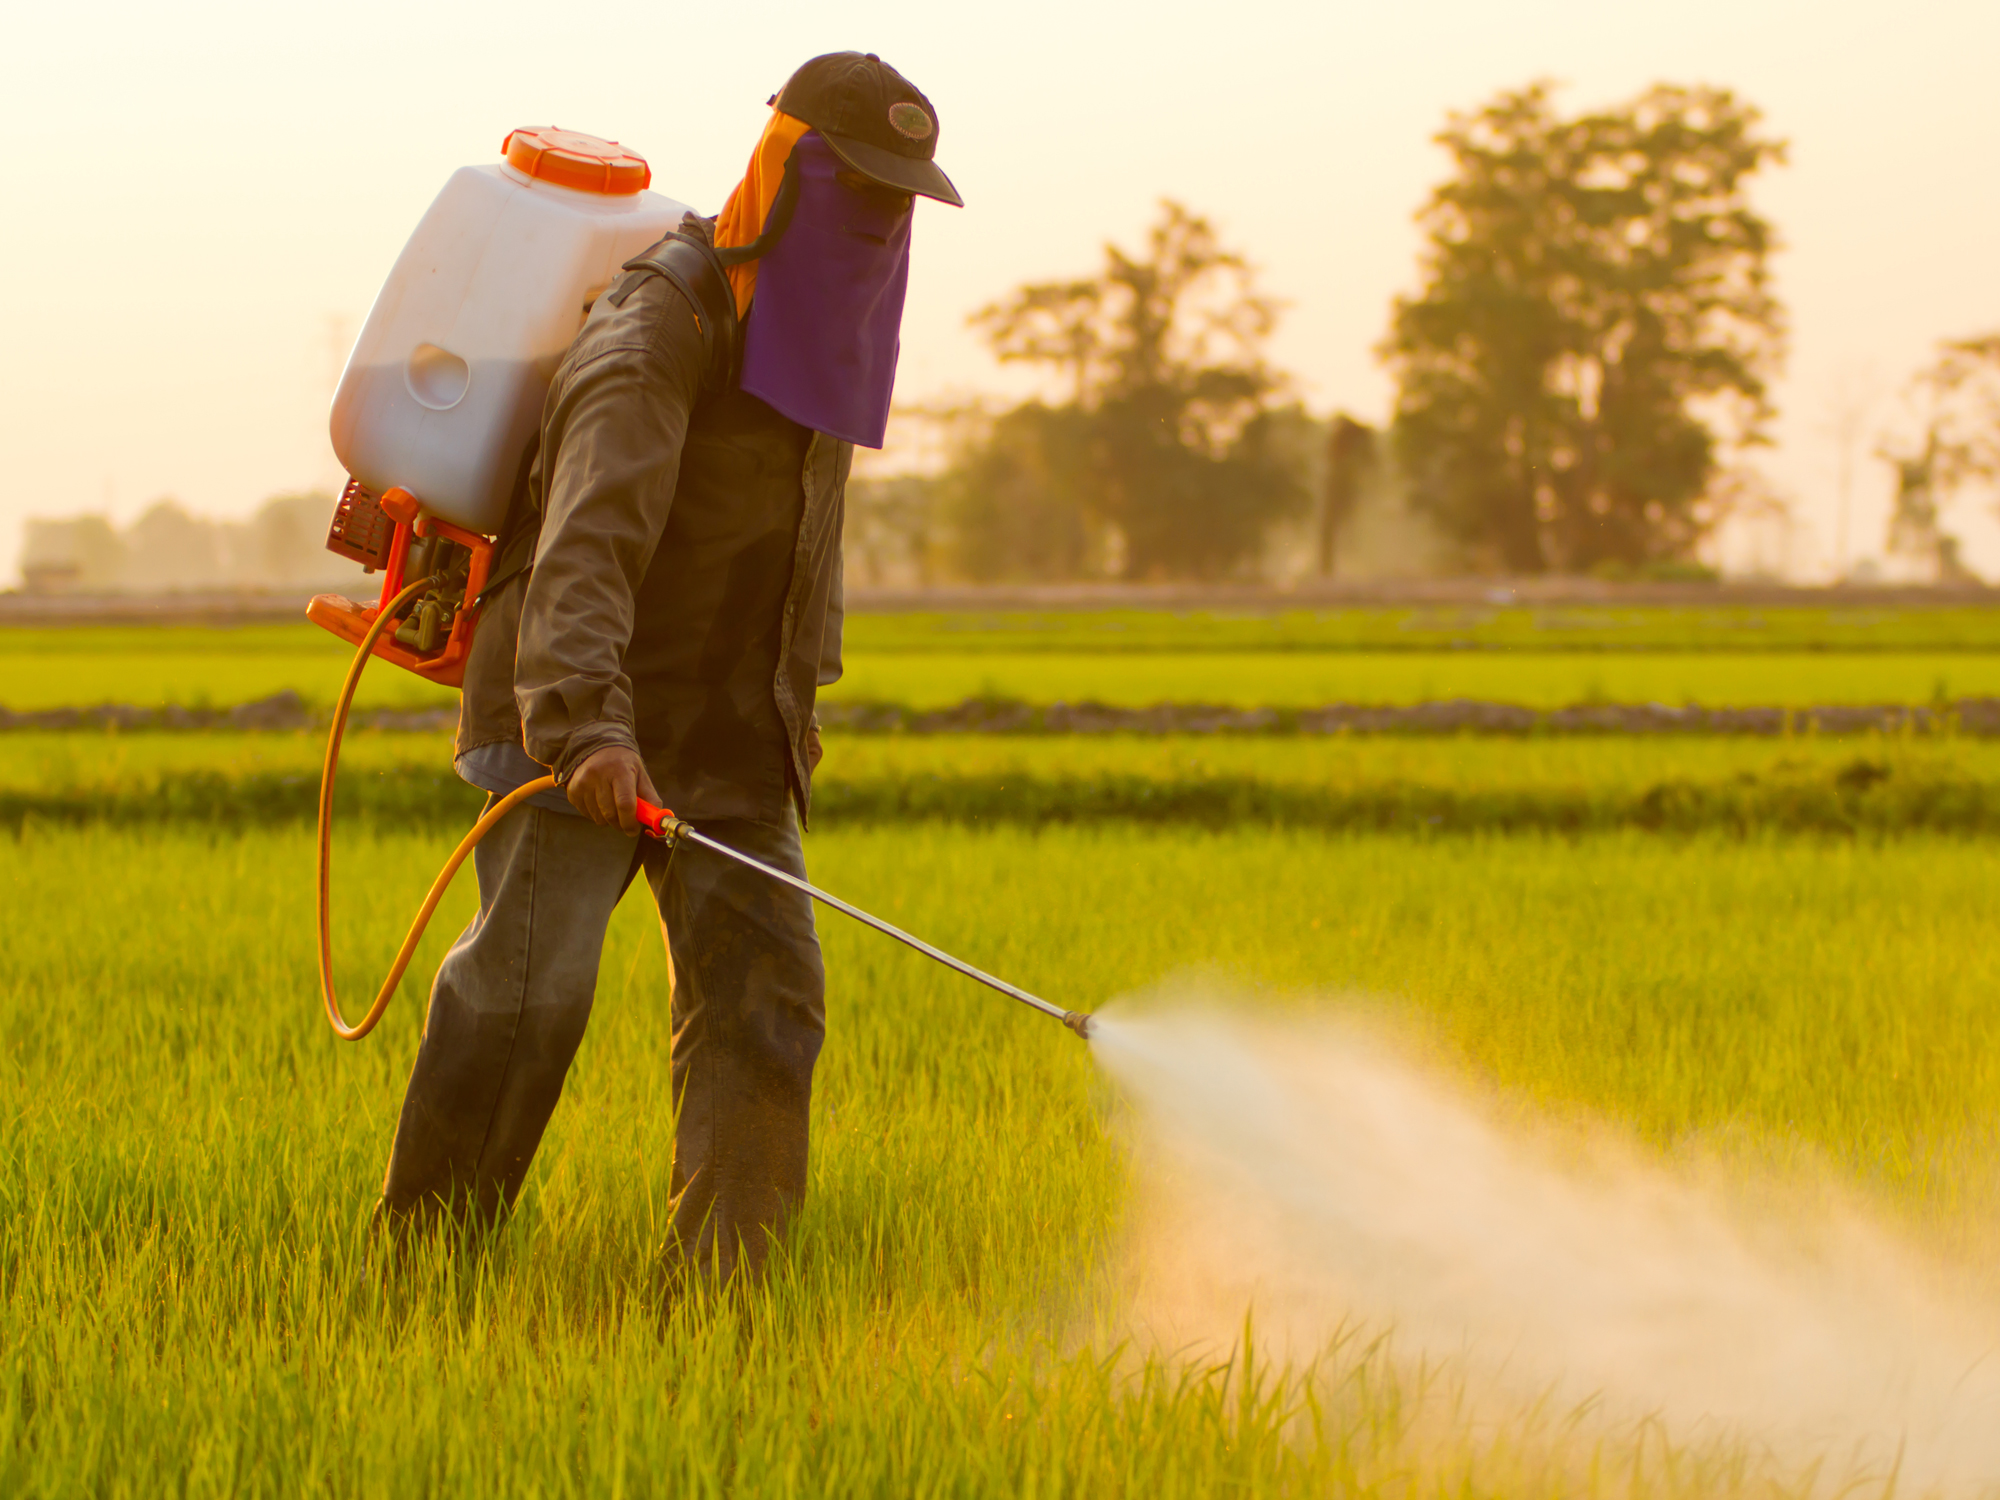 Farmer spraying herbicide